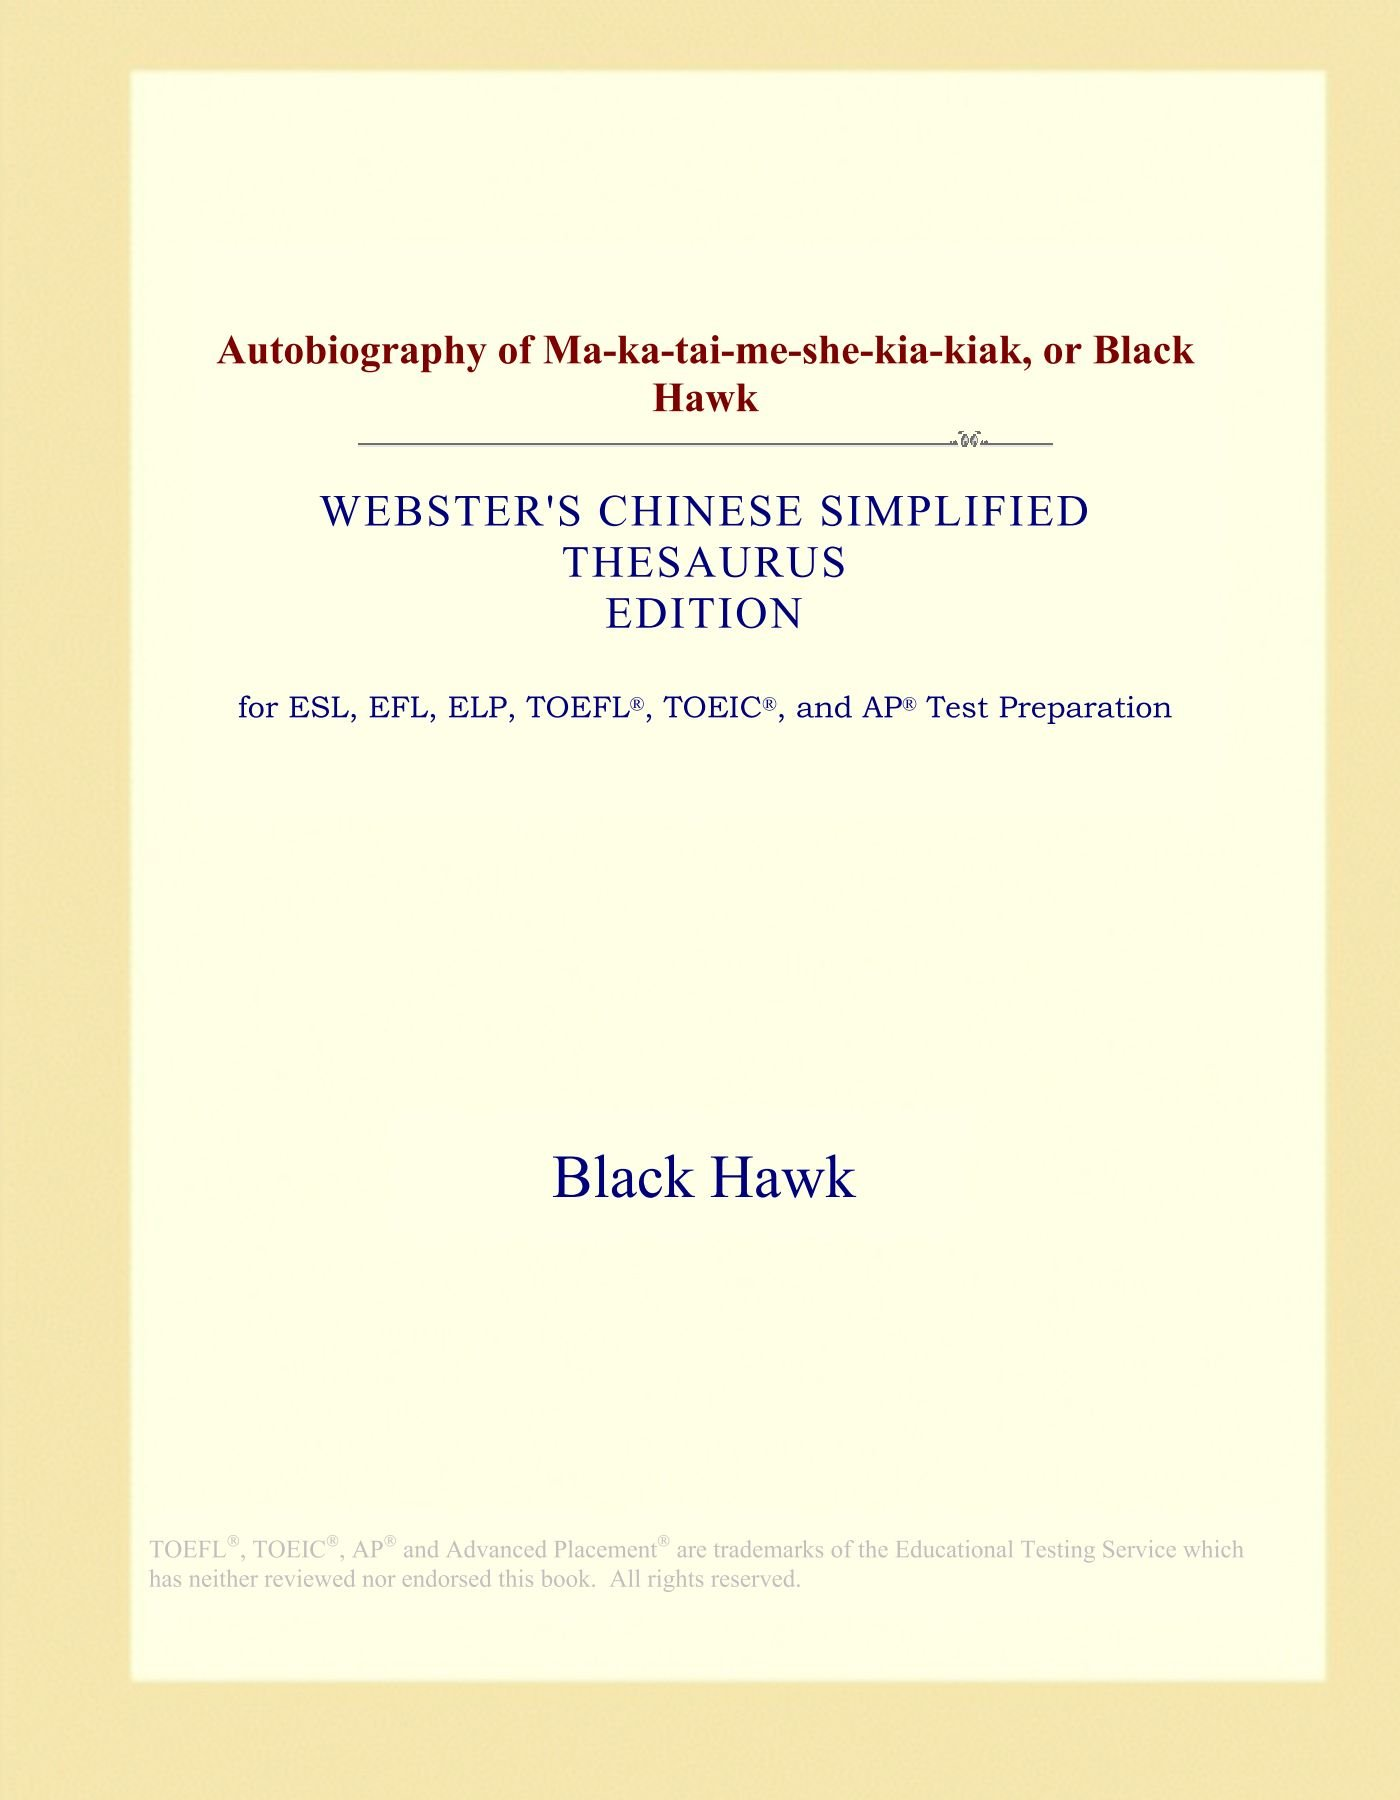 Download Autobiography of Ma-ka-tai-me-she-kia-kiak, or Black Hawk (Webster's Chinese Simplified Thesaurus Edition) pdf